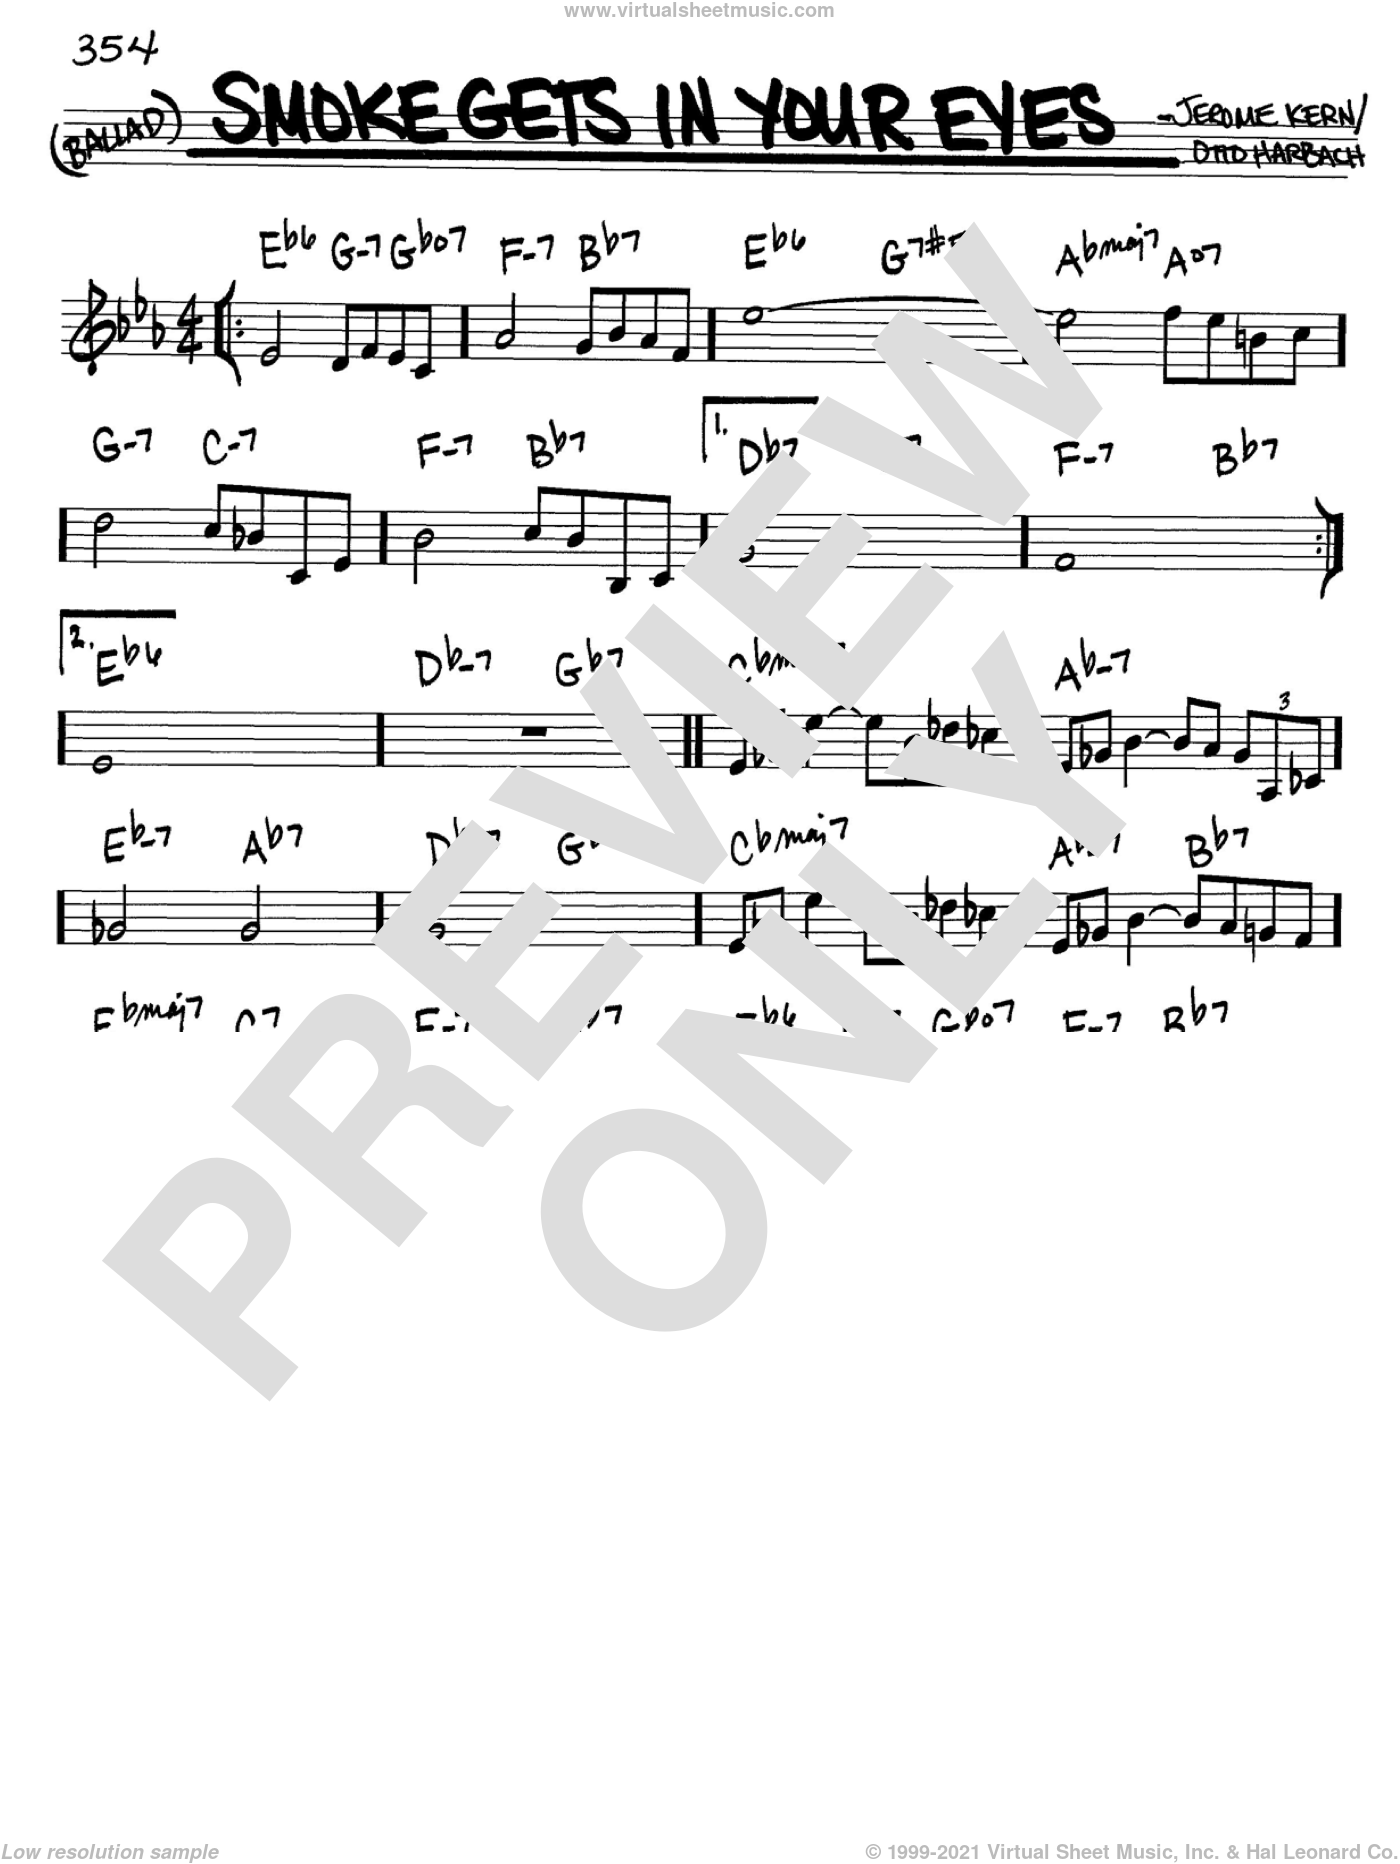 Smoke Gets In Your Eyes sheet music for voice and other instruments (C) by Otto Harbach